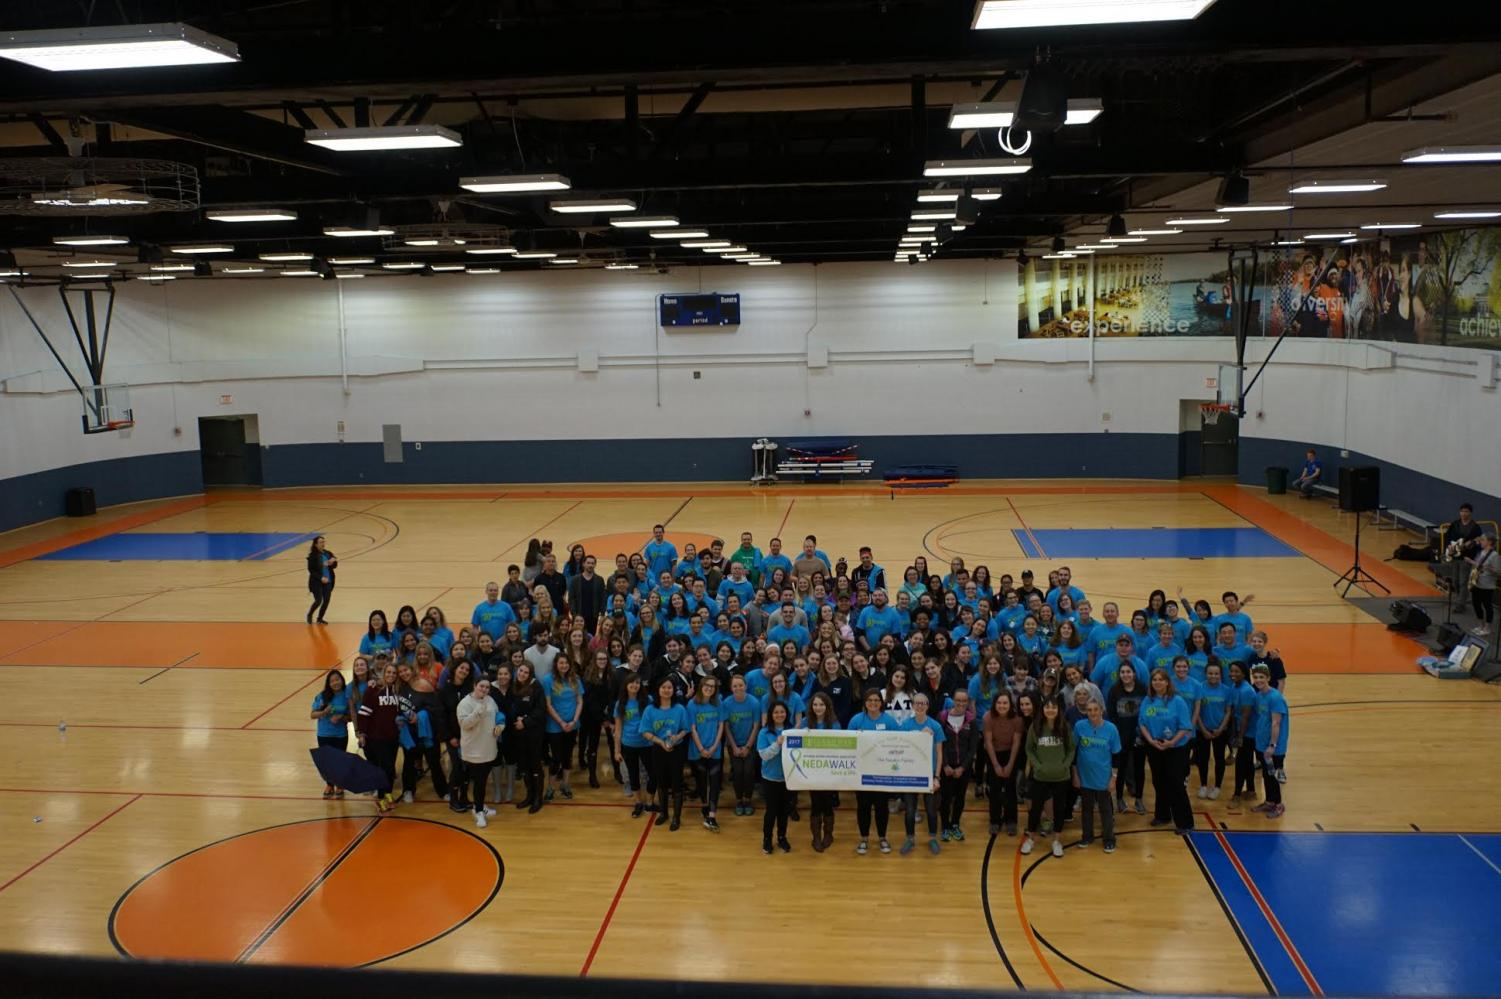 Participants of 2017 National Eating Disorders Association Walk. On April 21, the fifth annual walk will occur, the goal is to raise $25,000 which will go directly to NEDA.